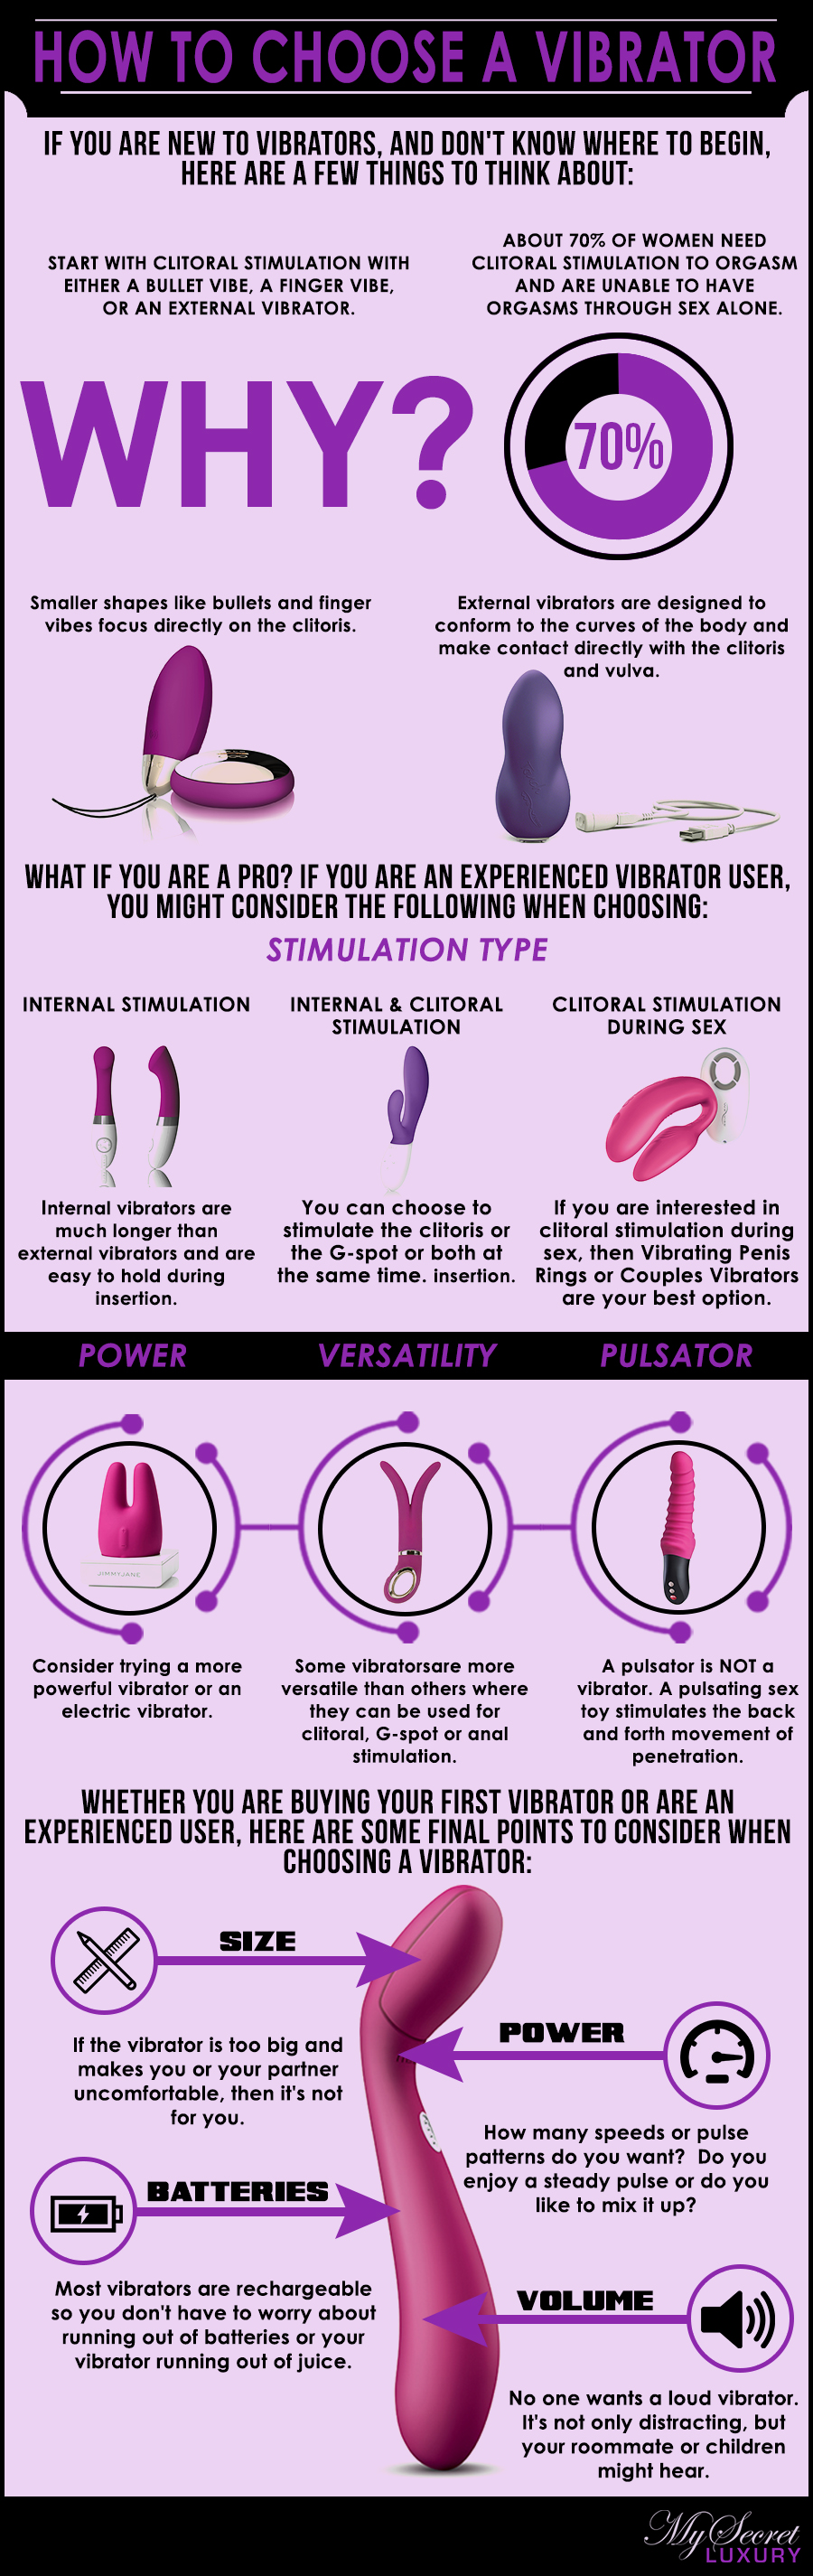 how-to-choose-a-luxury-vibrator.jpg